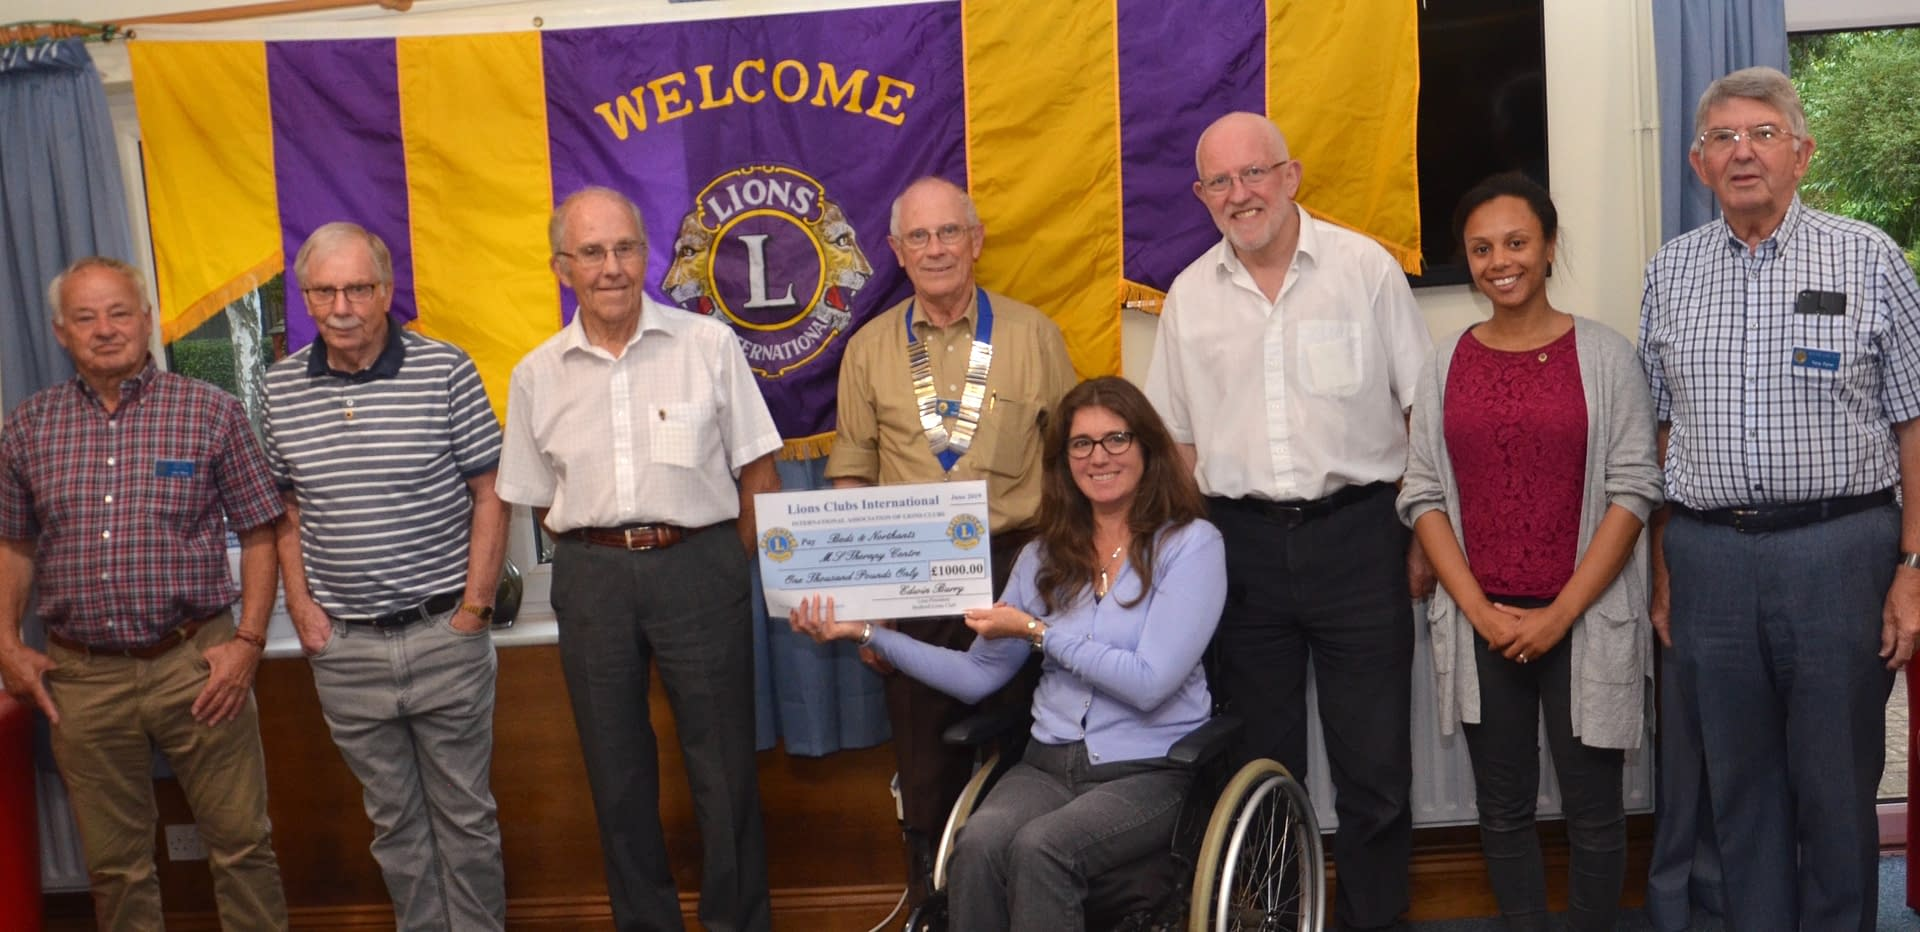 A group of people with the Lions club banner